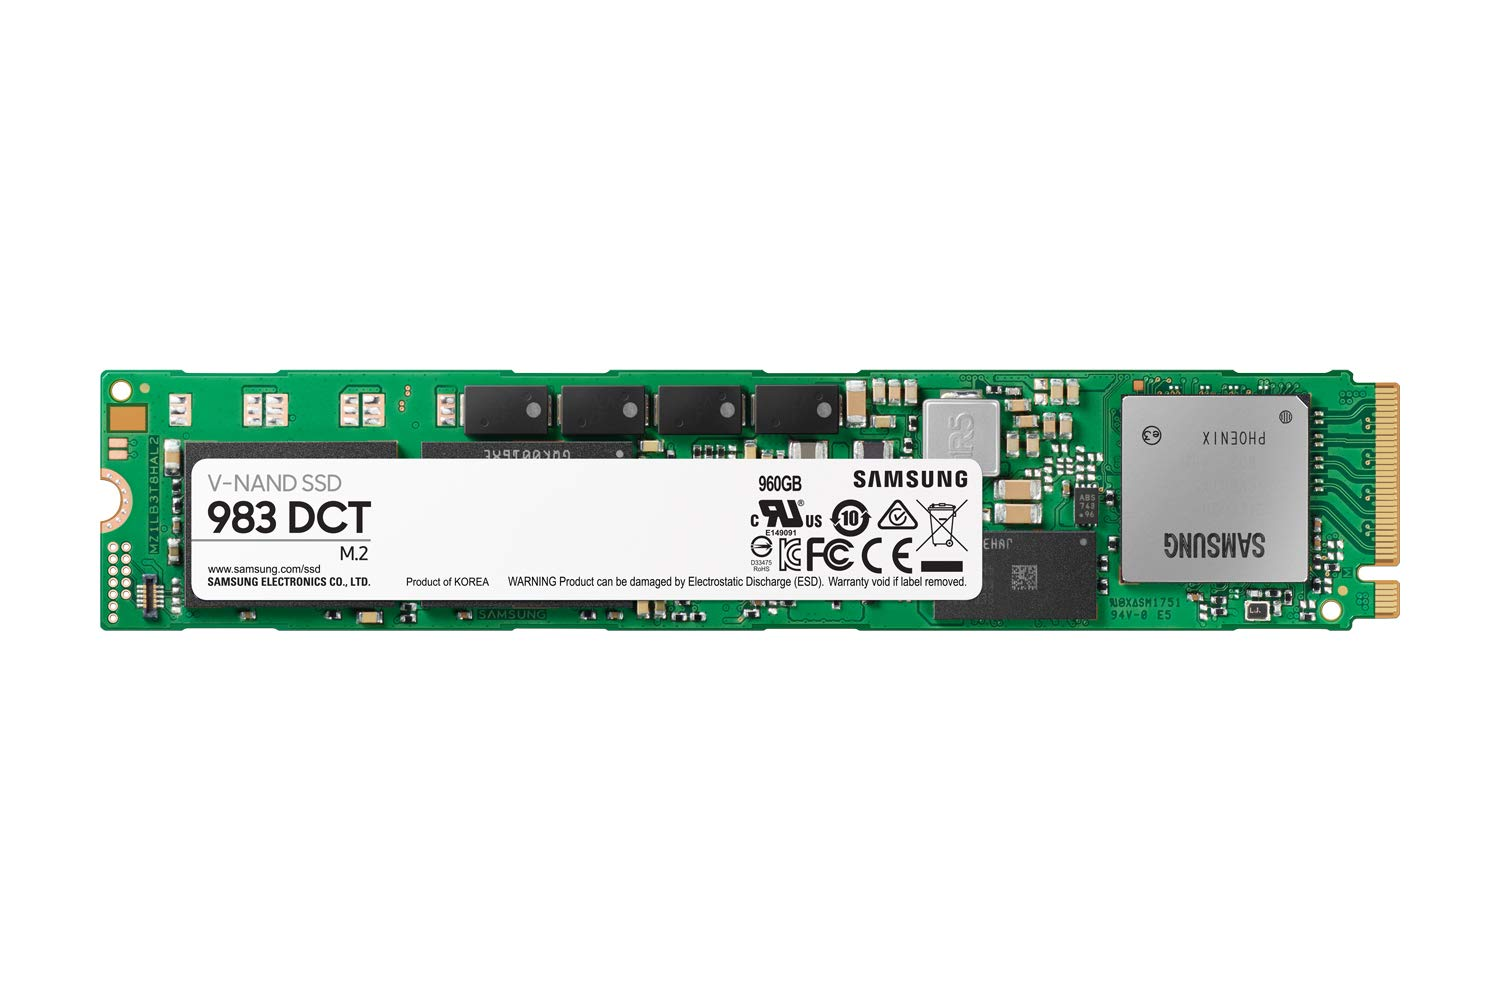 Samsung 983 DCT Series - 960GB NVMe M.2 (22110) SSD -  MZ-1LB960NE - 5 year limited warranty